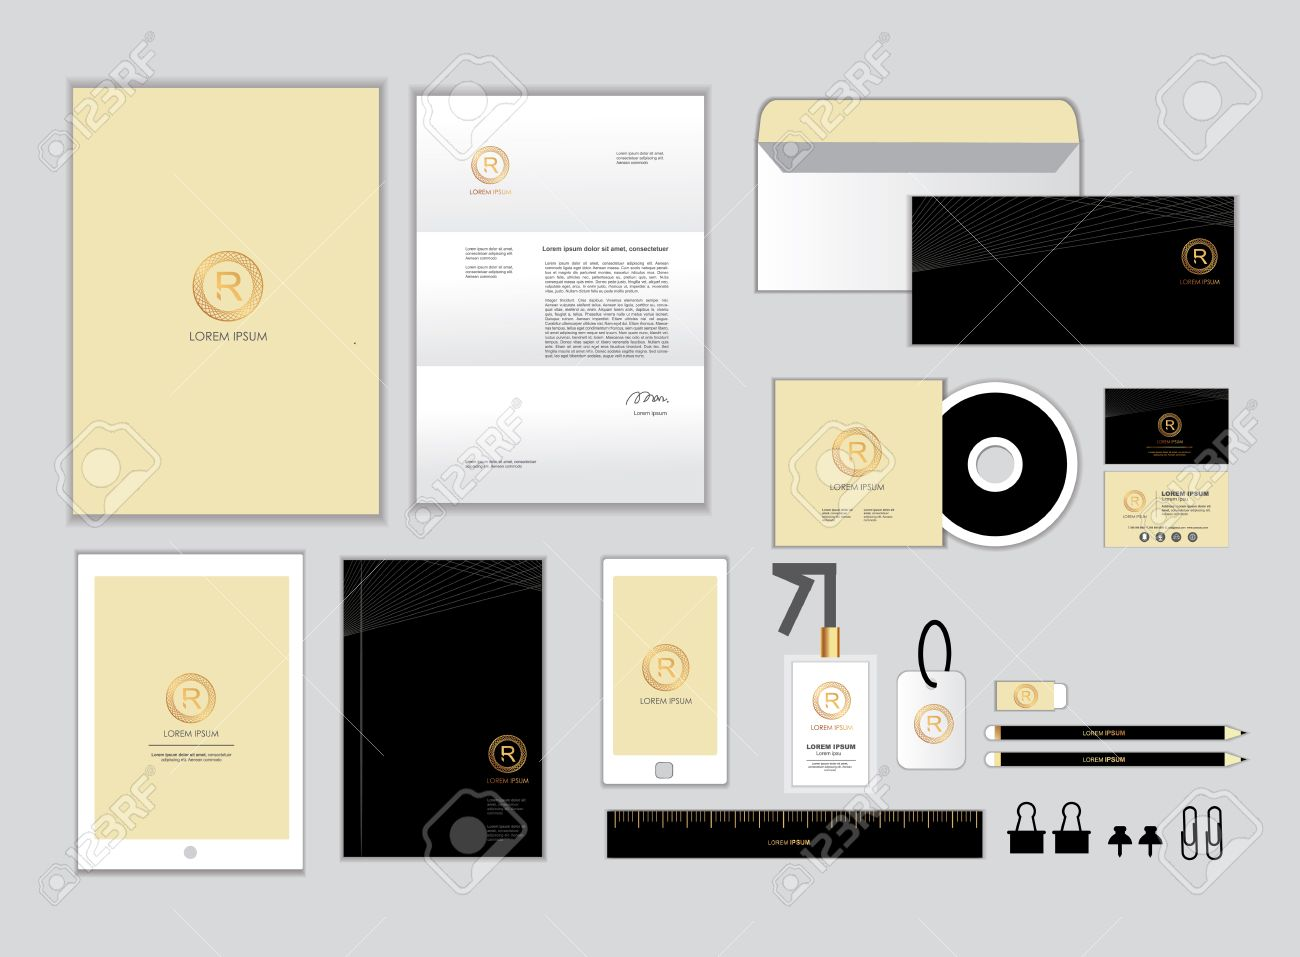 Gold And Black Corporate Identity Template For Your Business ...